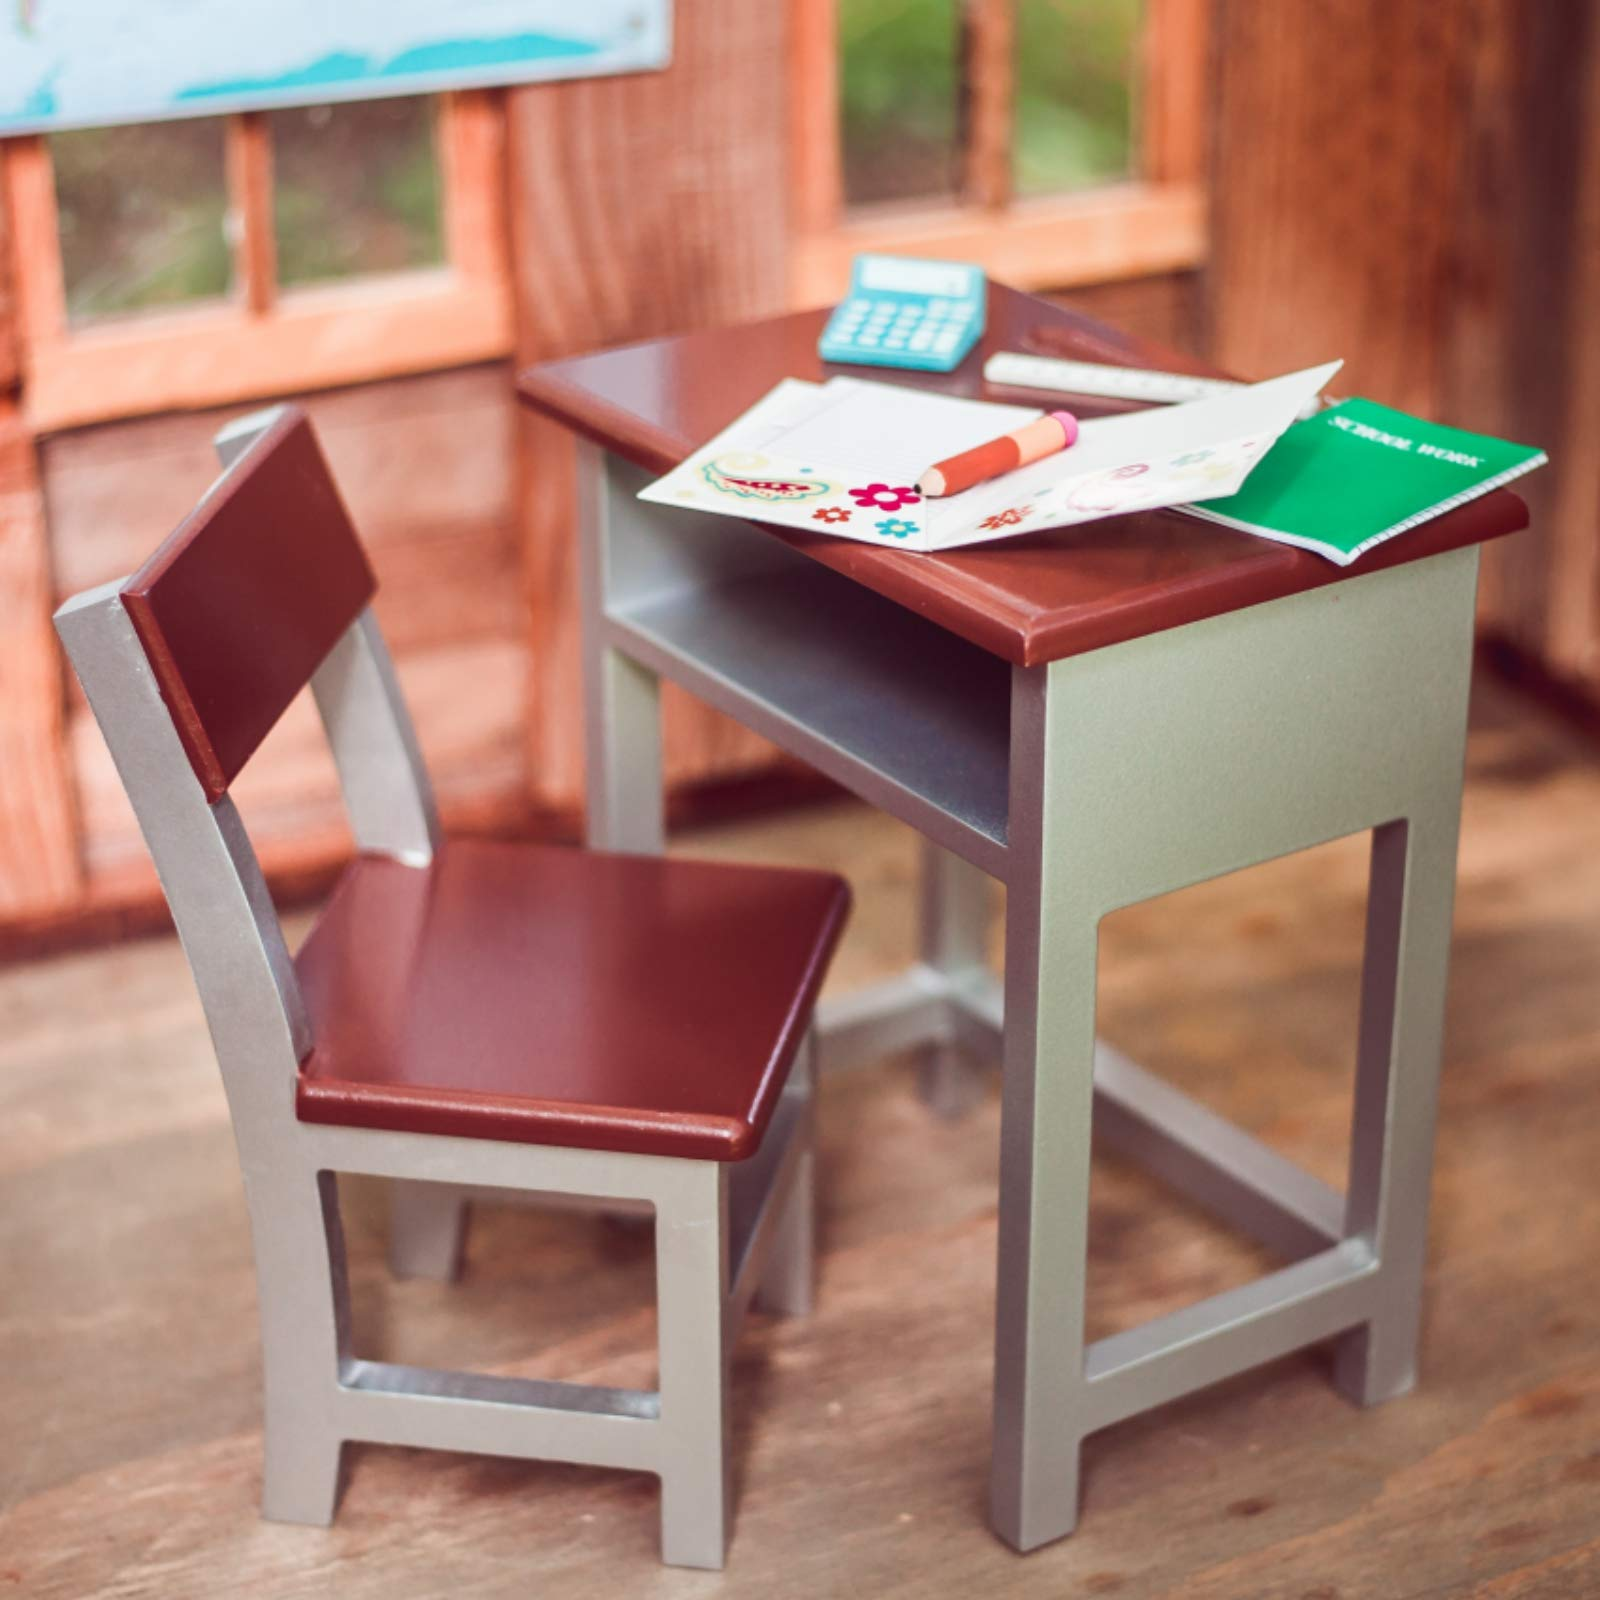 The Queen's Treasures Wooden Modern School Desk & Chair Compatible with18 Inch American Girl Dolls. Furniture Plus School Supply Accessories Including Folder, Paper, Journal, Pencil, Calculator,Ruler by The Queen's Treasures